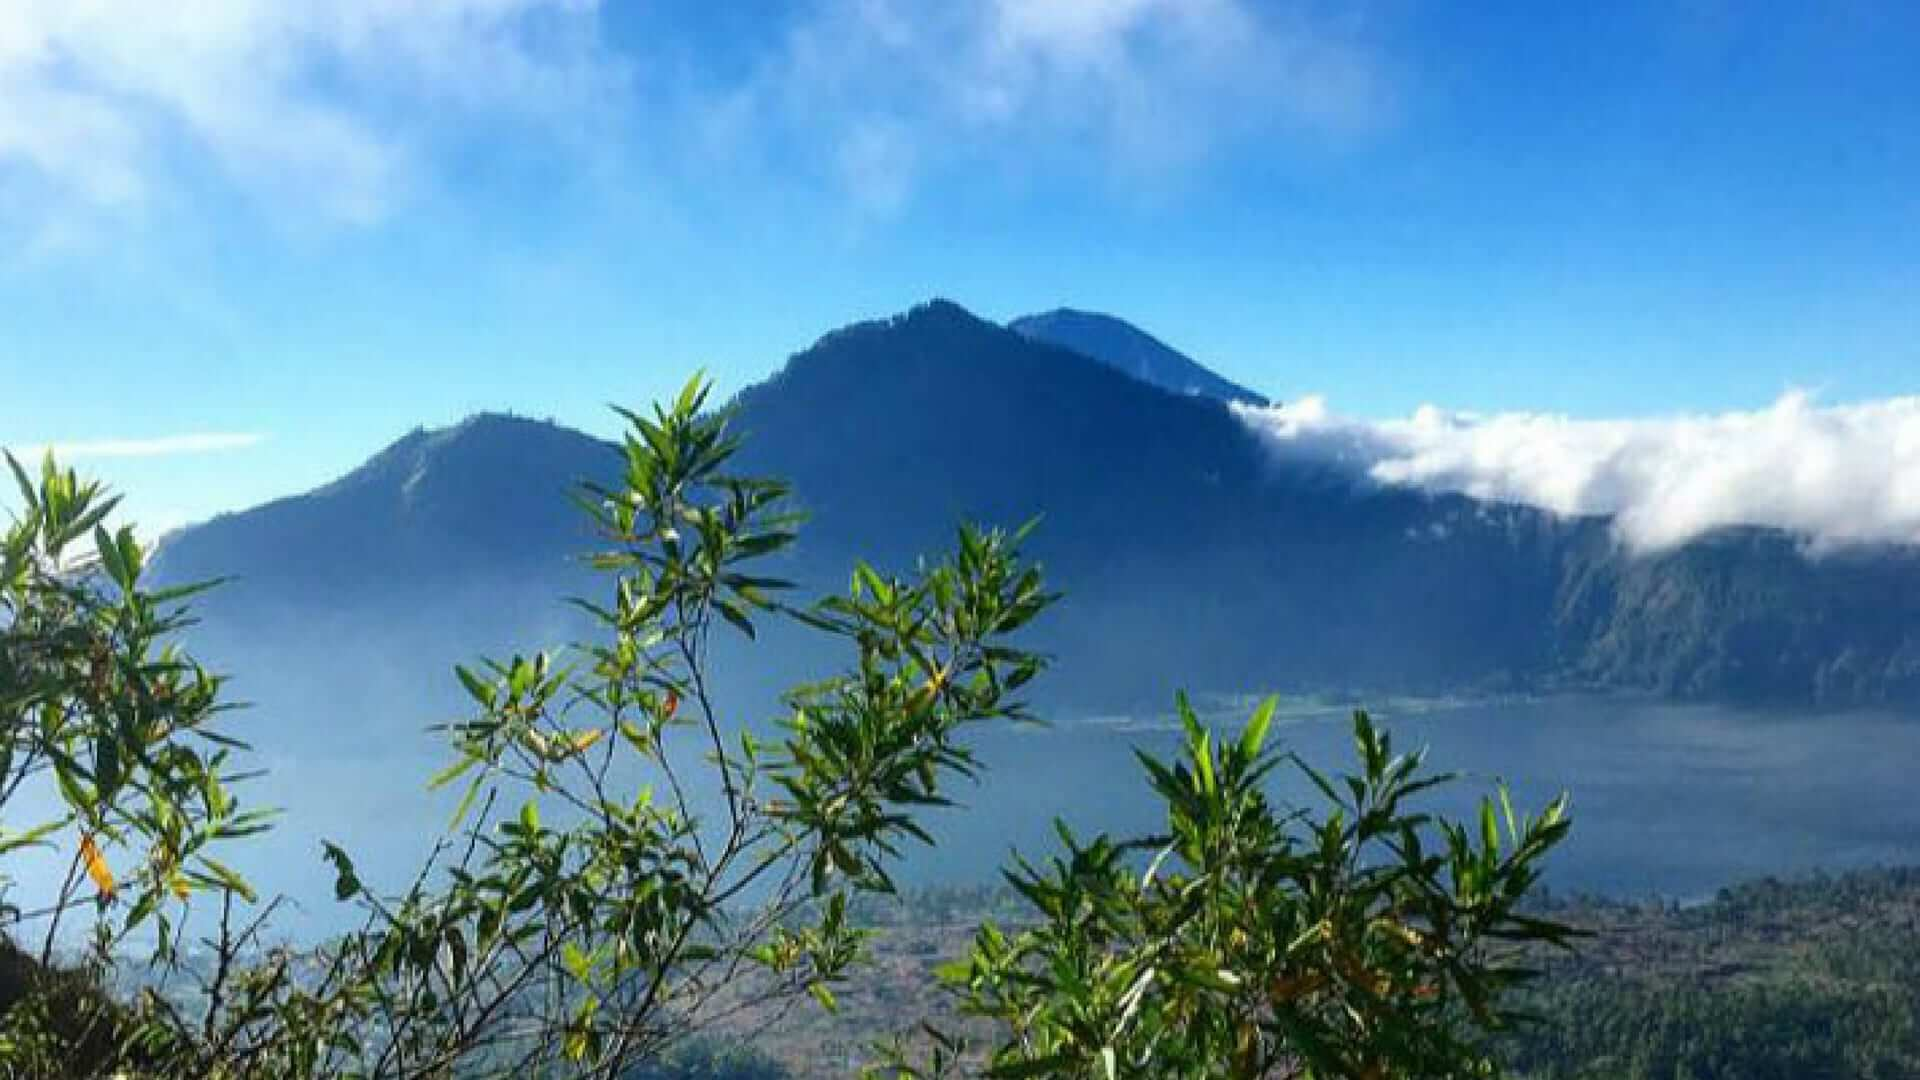 Blue sky and a view of Mount Batur during daytime in Bali.